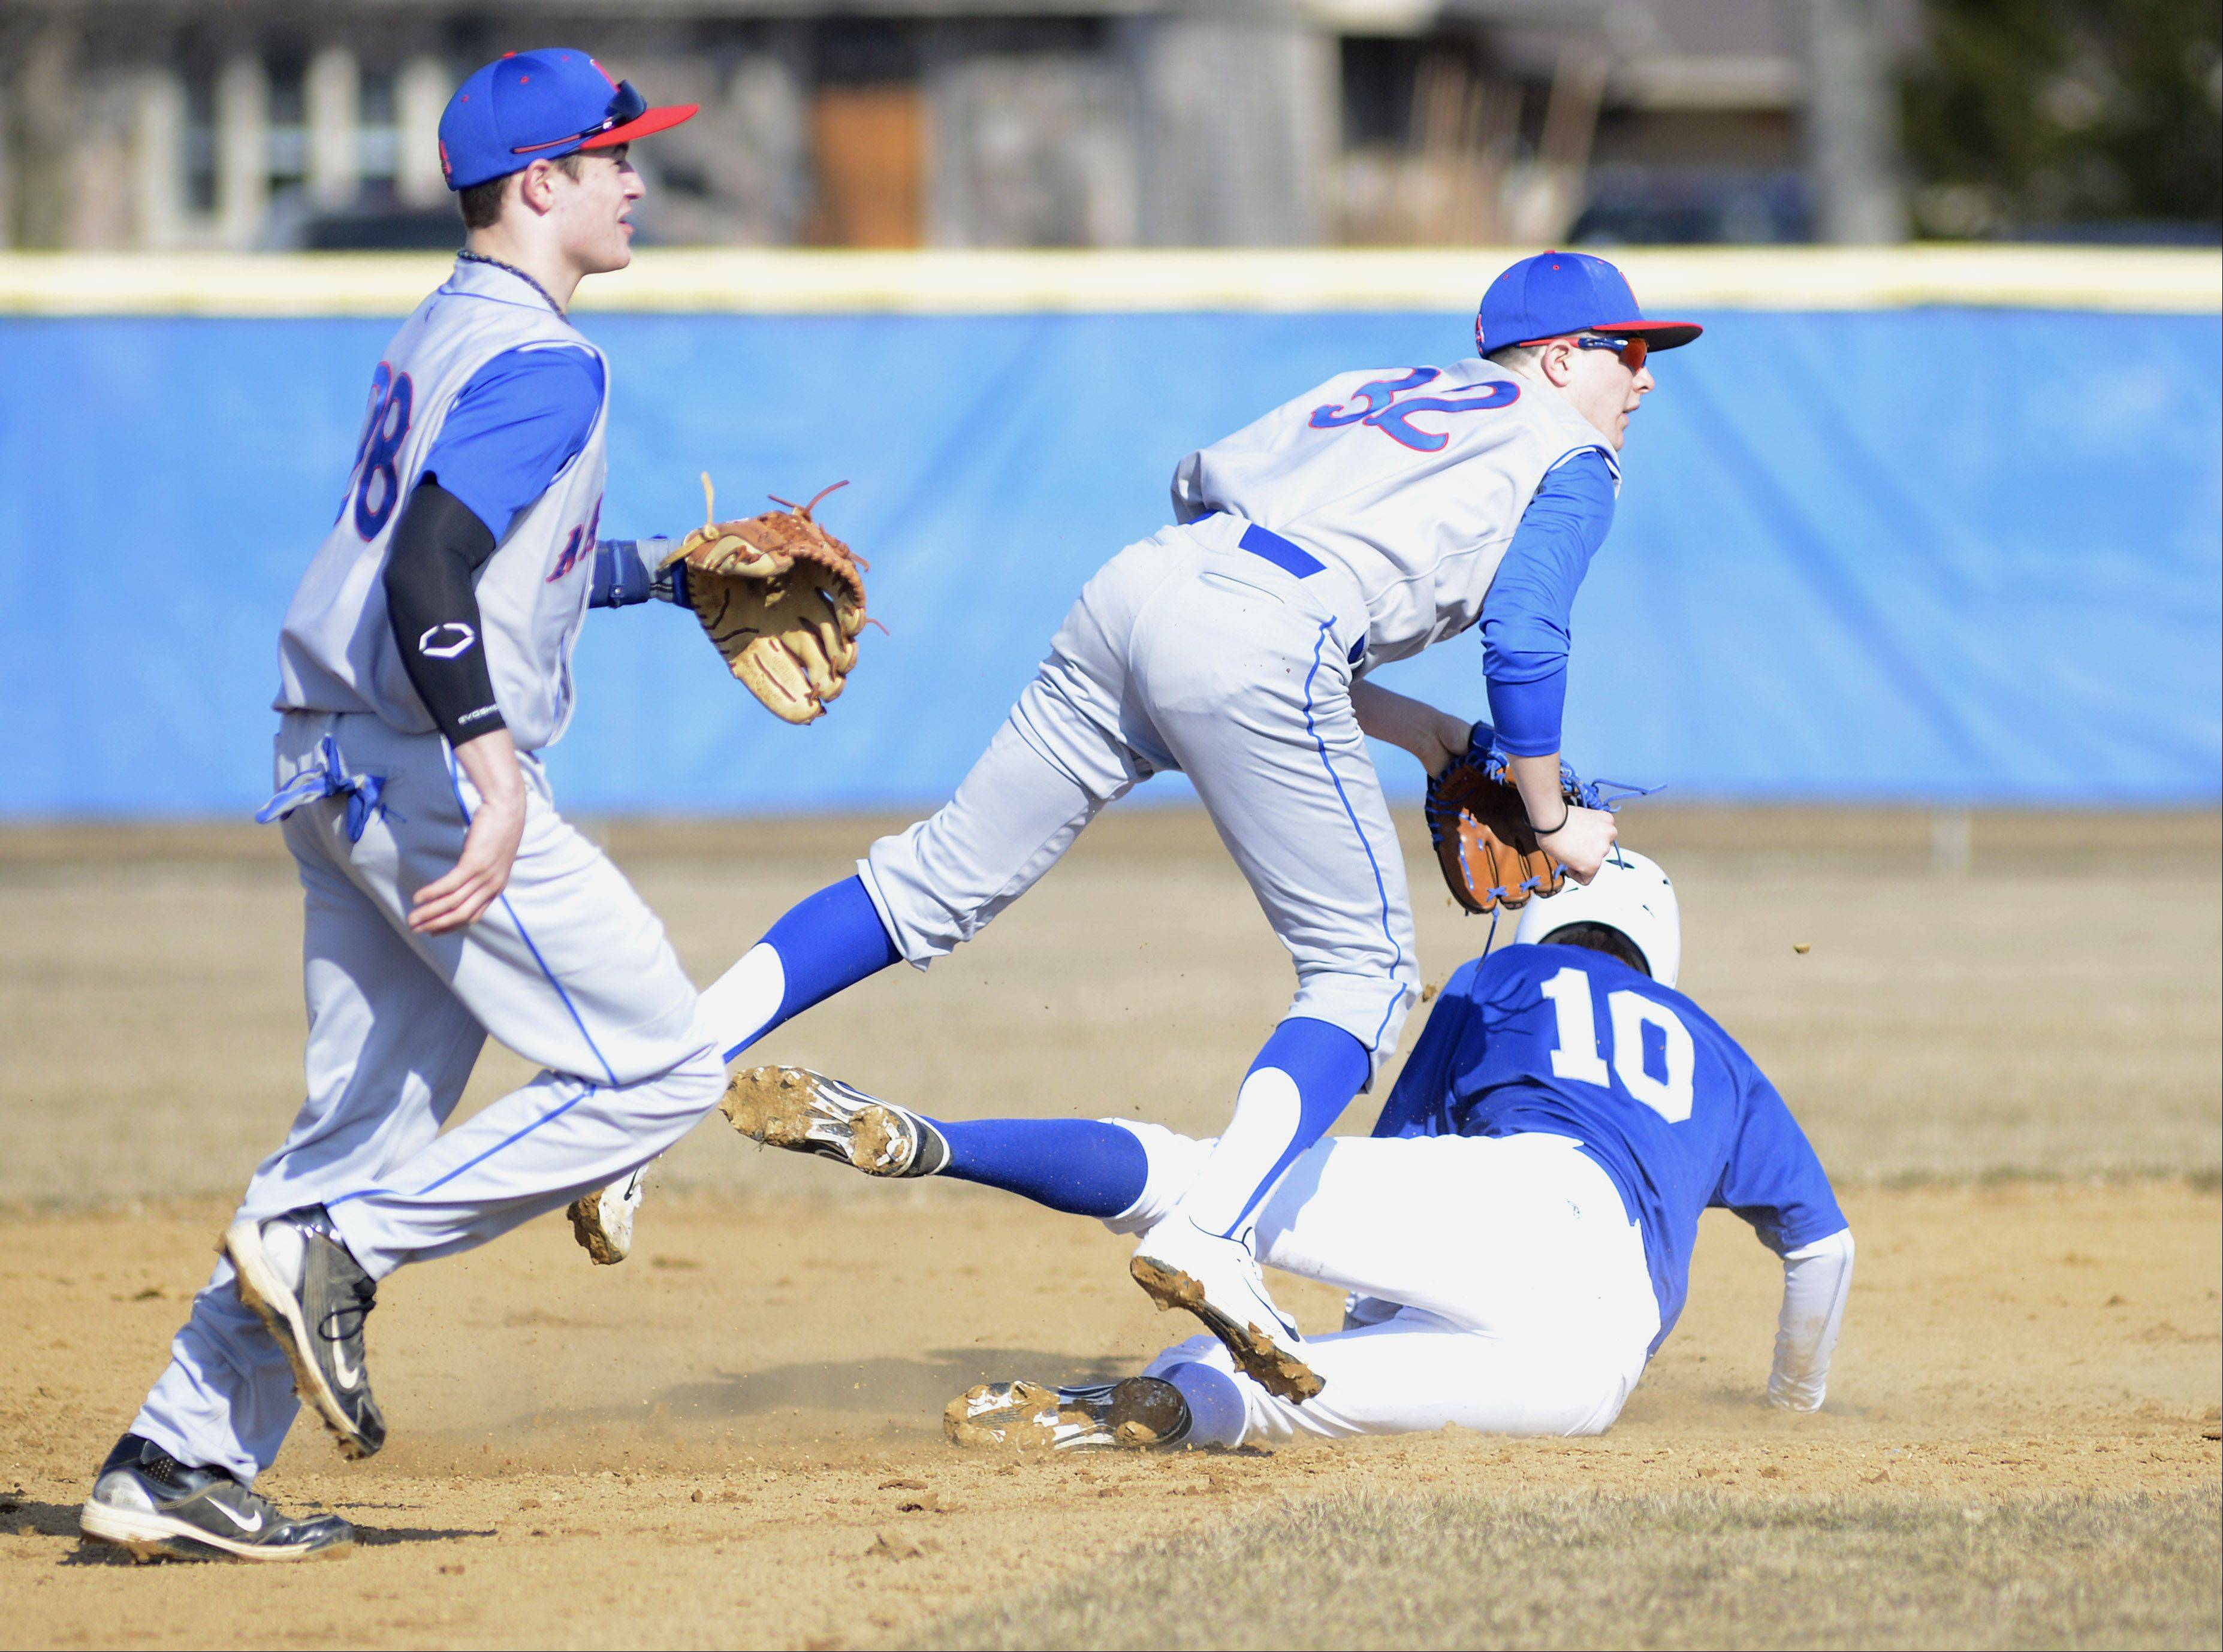 Geneva's Mitchell Endriukaitis is tagged out at second base by Marmion's Edgar Sanchez in the first inning on Thursday, March 28.